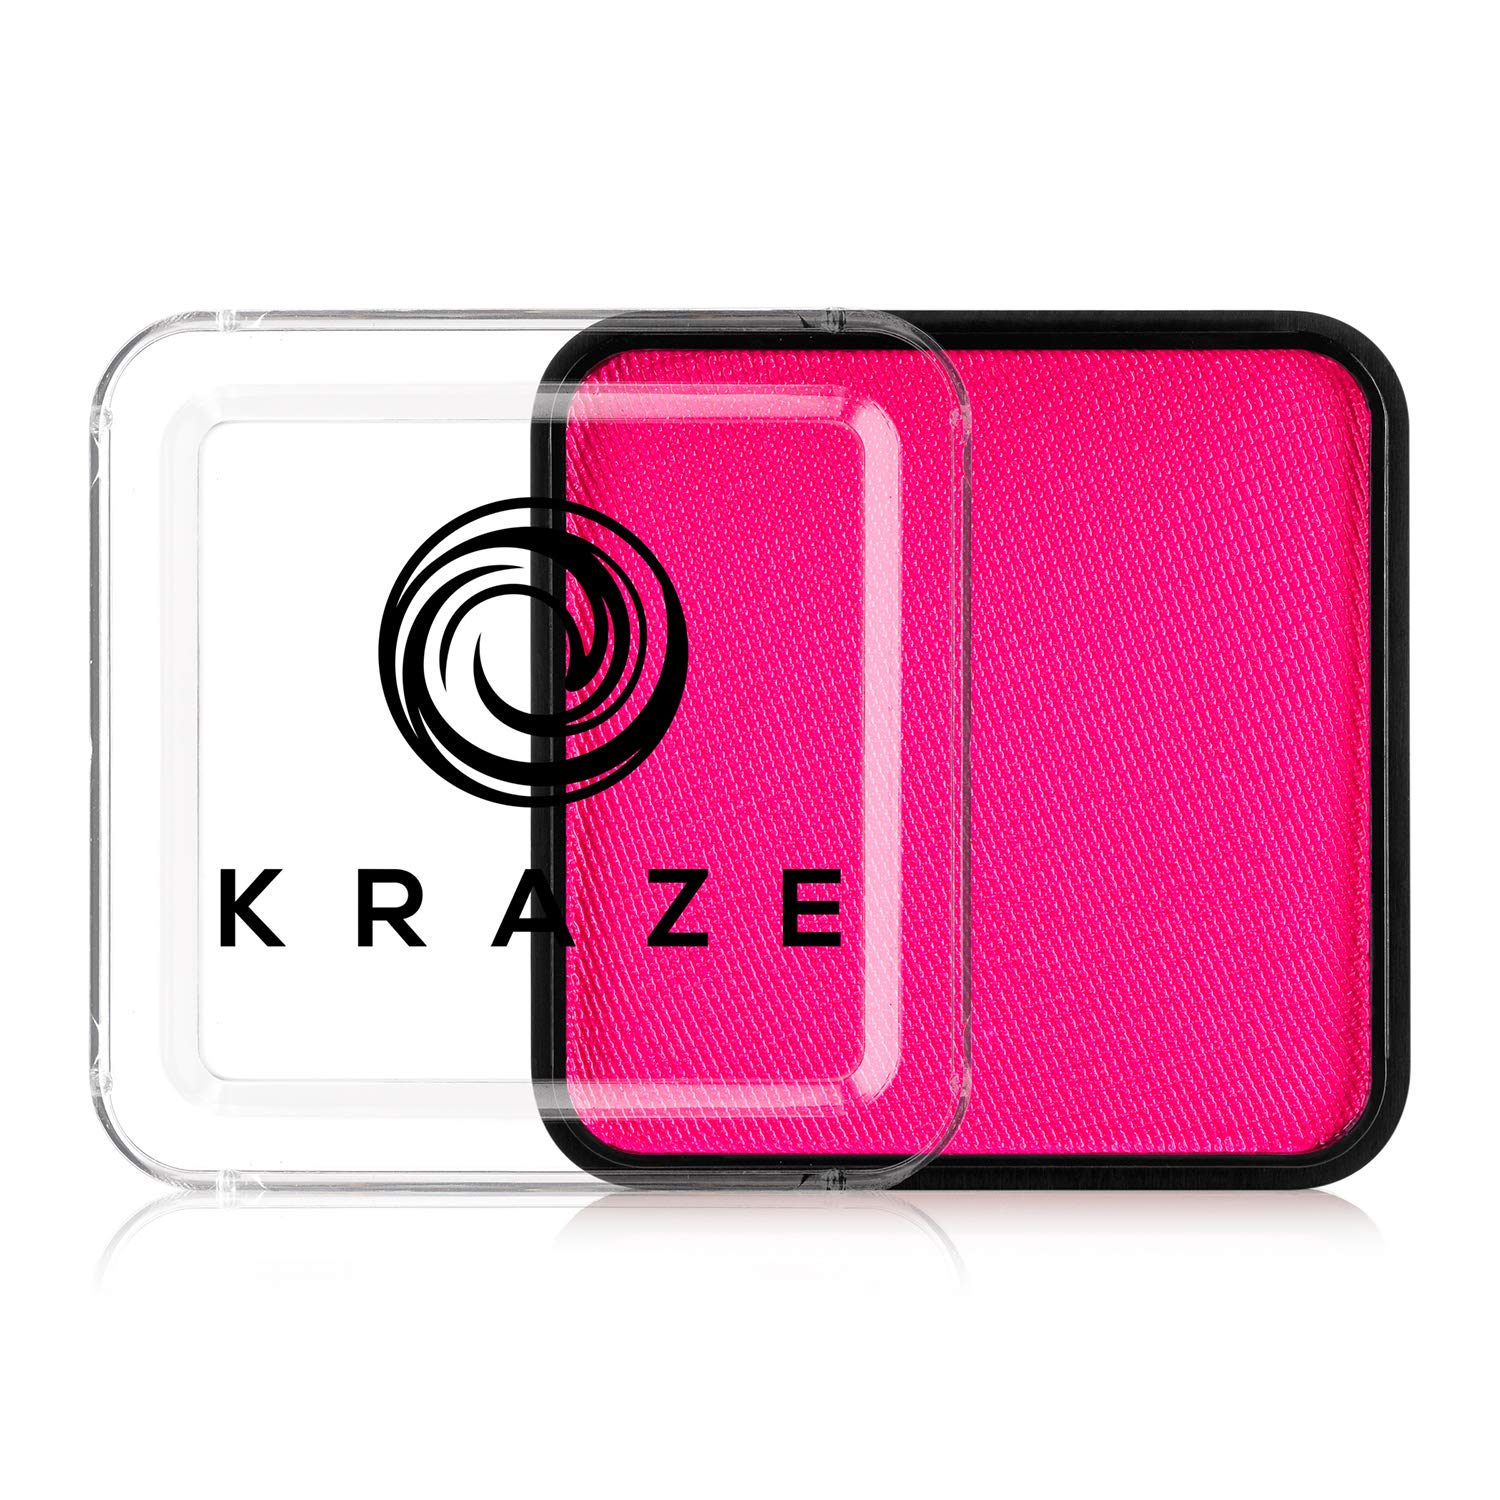 Kraze FX Square - Neon Pink (25 gm) - Water Activated, Professional UV Glow Blacklight Reactive Face Painting Colors, Hypoallergenic, Safe, Washable Fluorescent Face & Body Paint